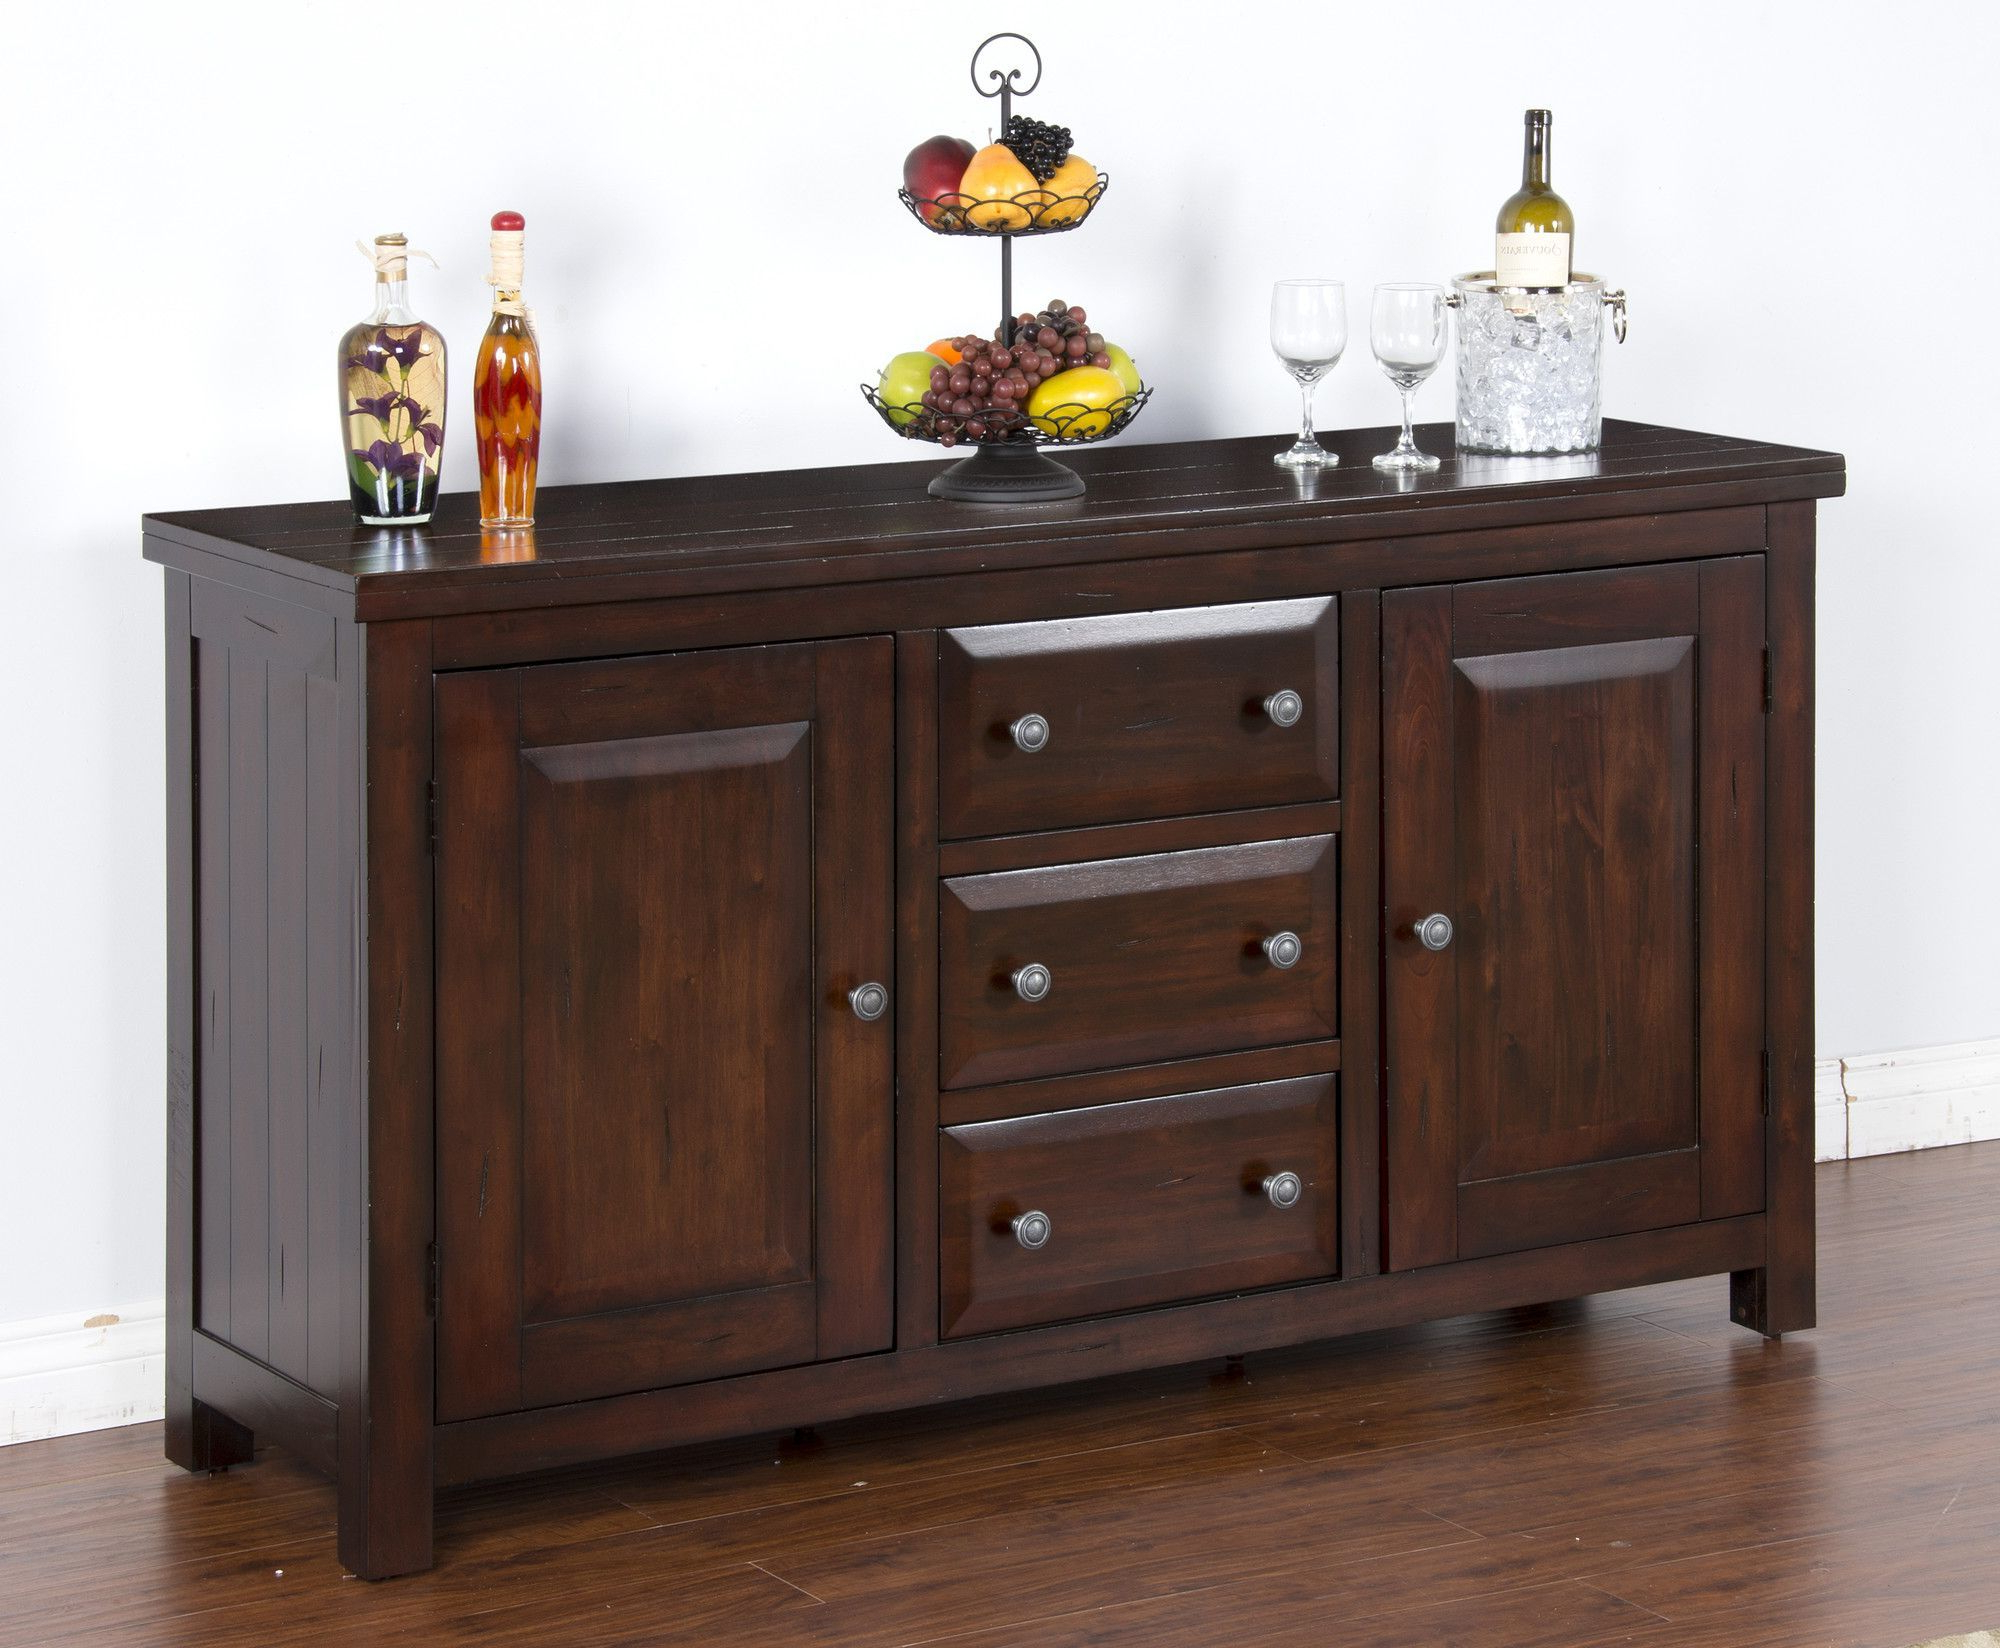 2020 Seiling Sideboards Throughout Buffet (View 12 of 20)